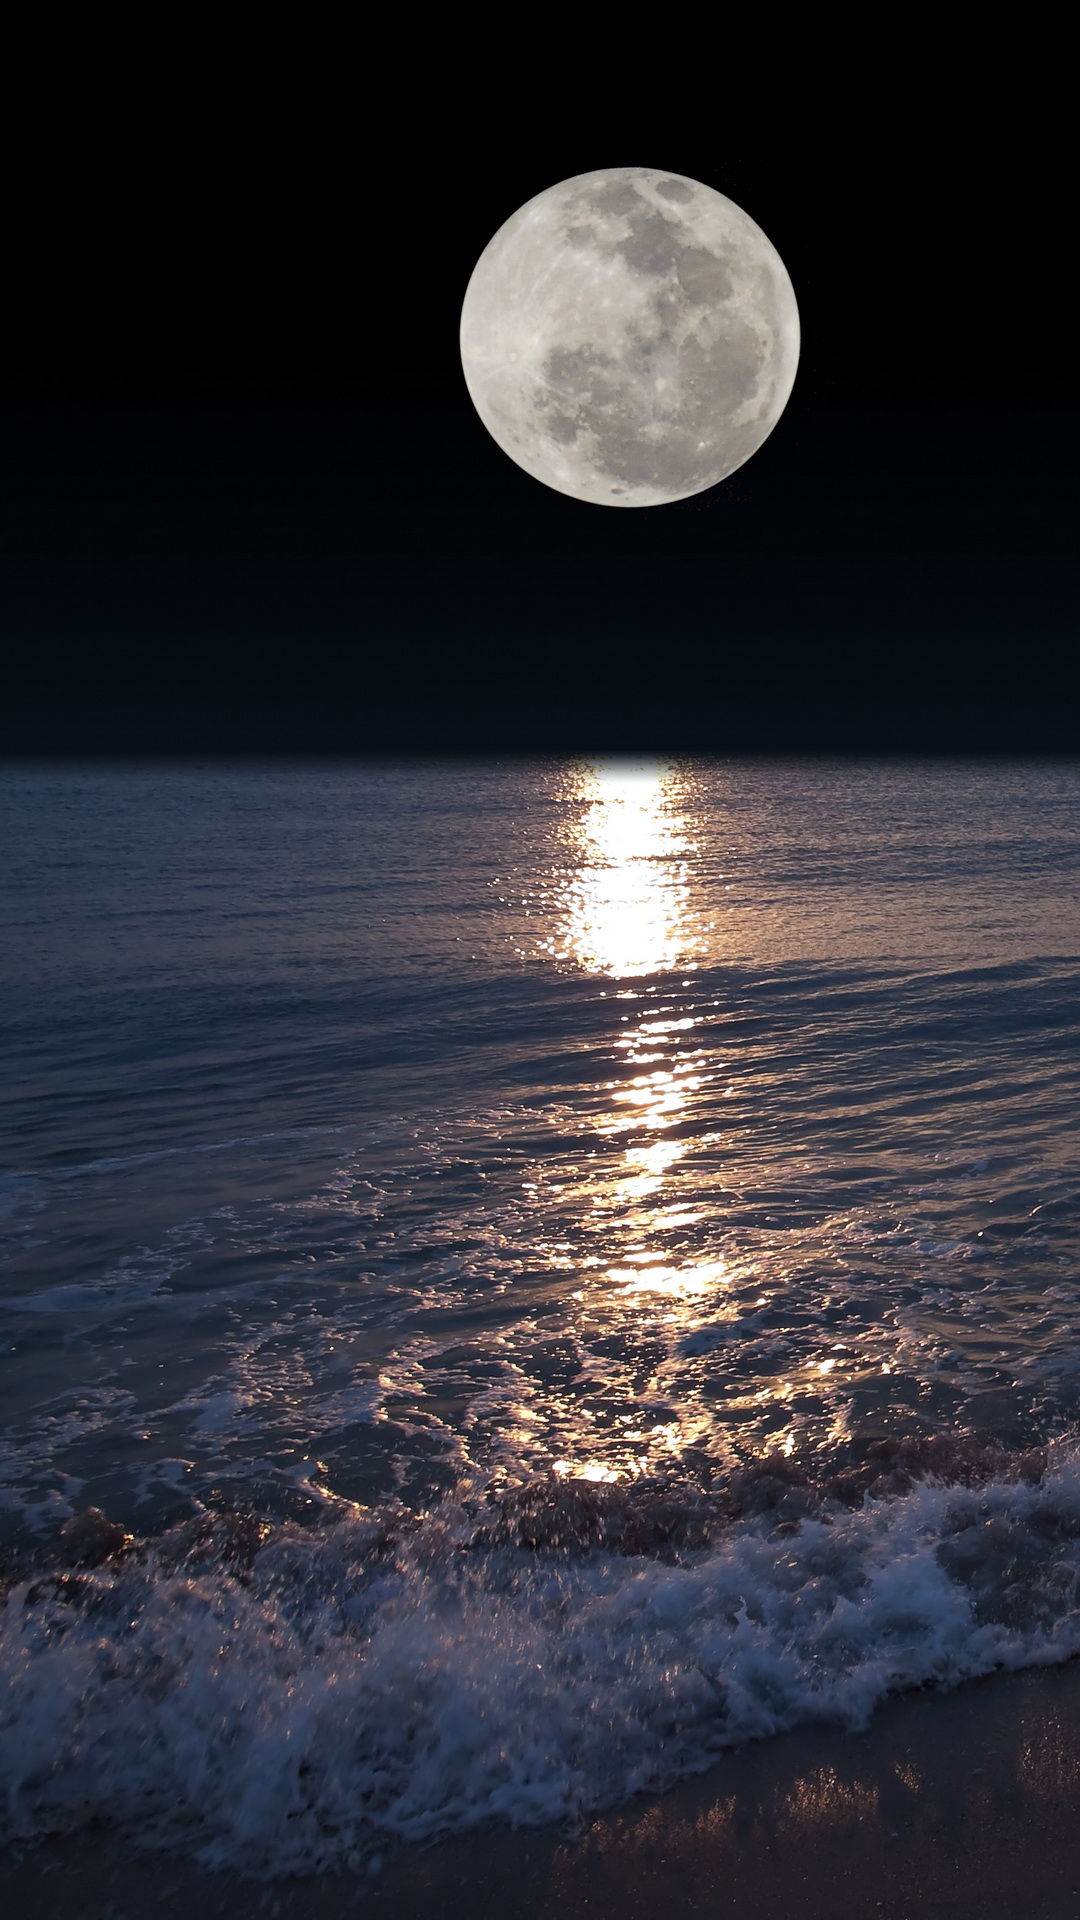 Night moon reflection on water mobile wallpaper